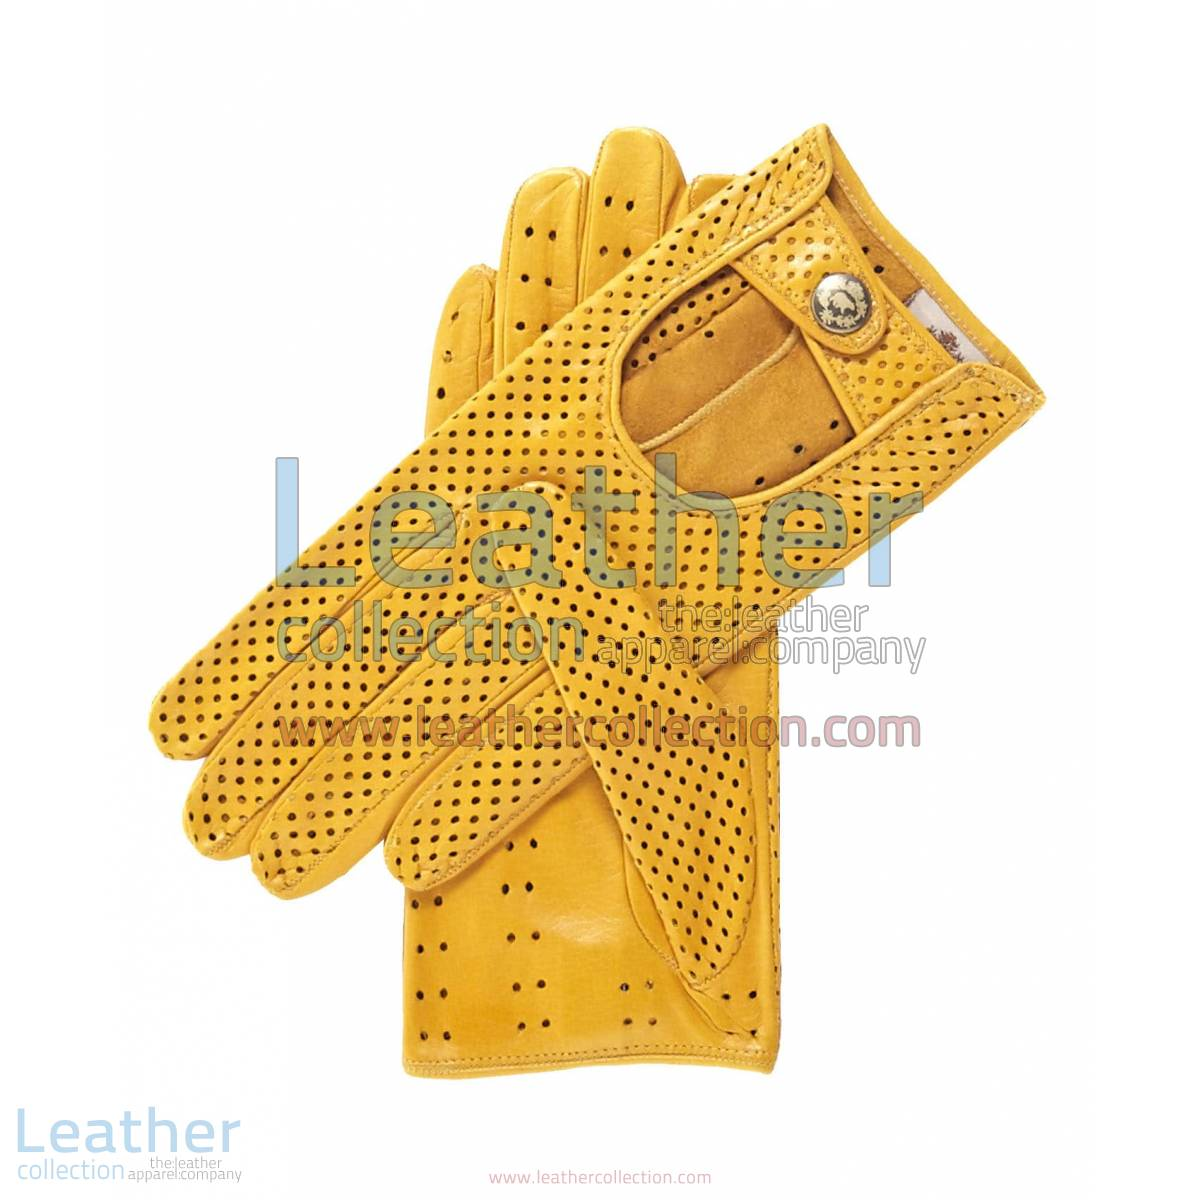 Ventilated Yellow Driving Gloves Ladies | yellow driving gloves